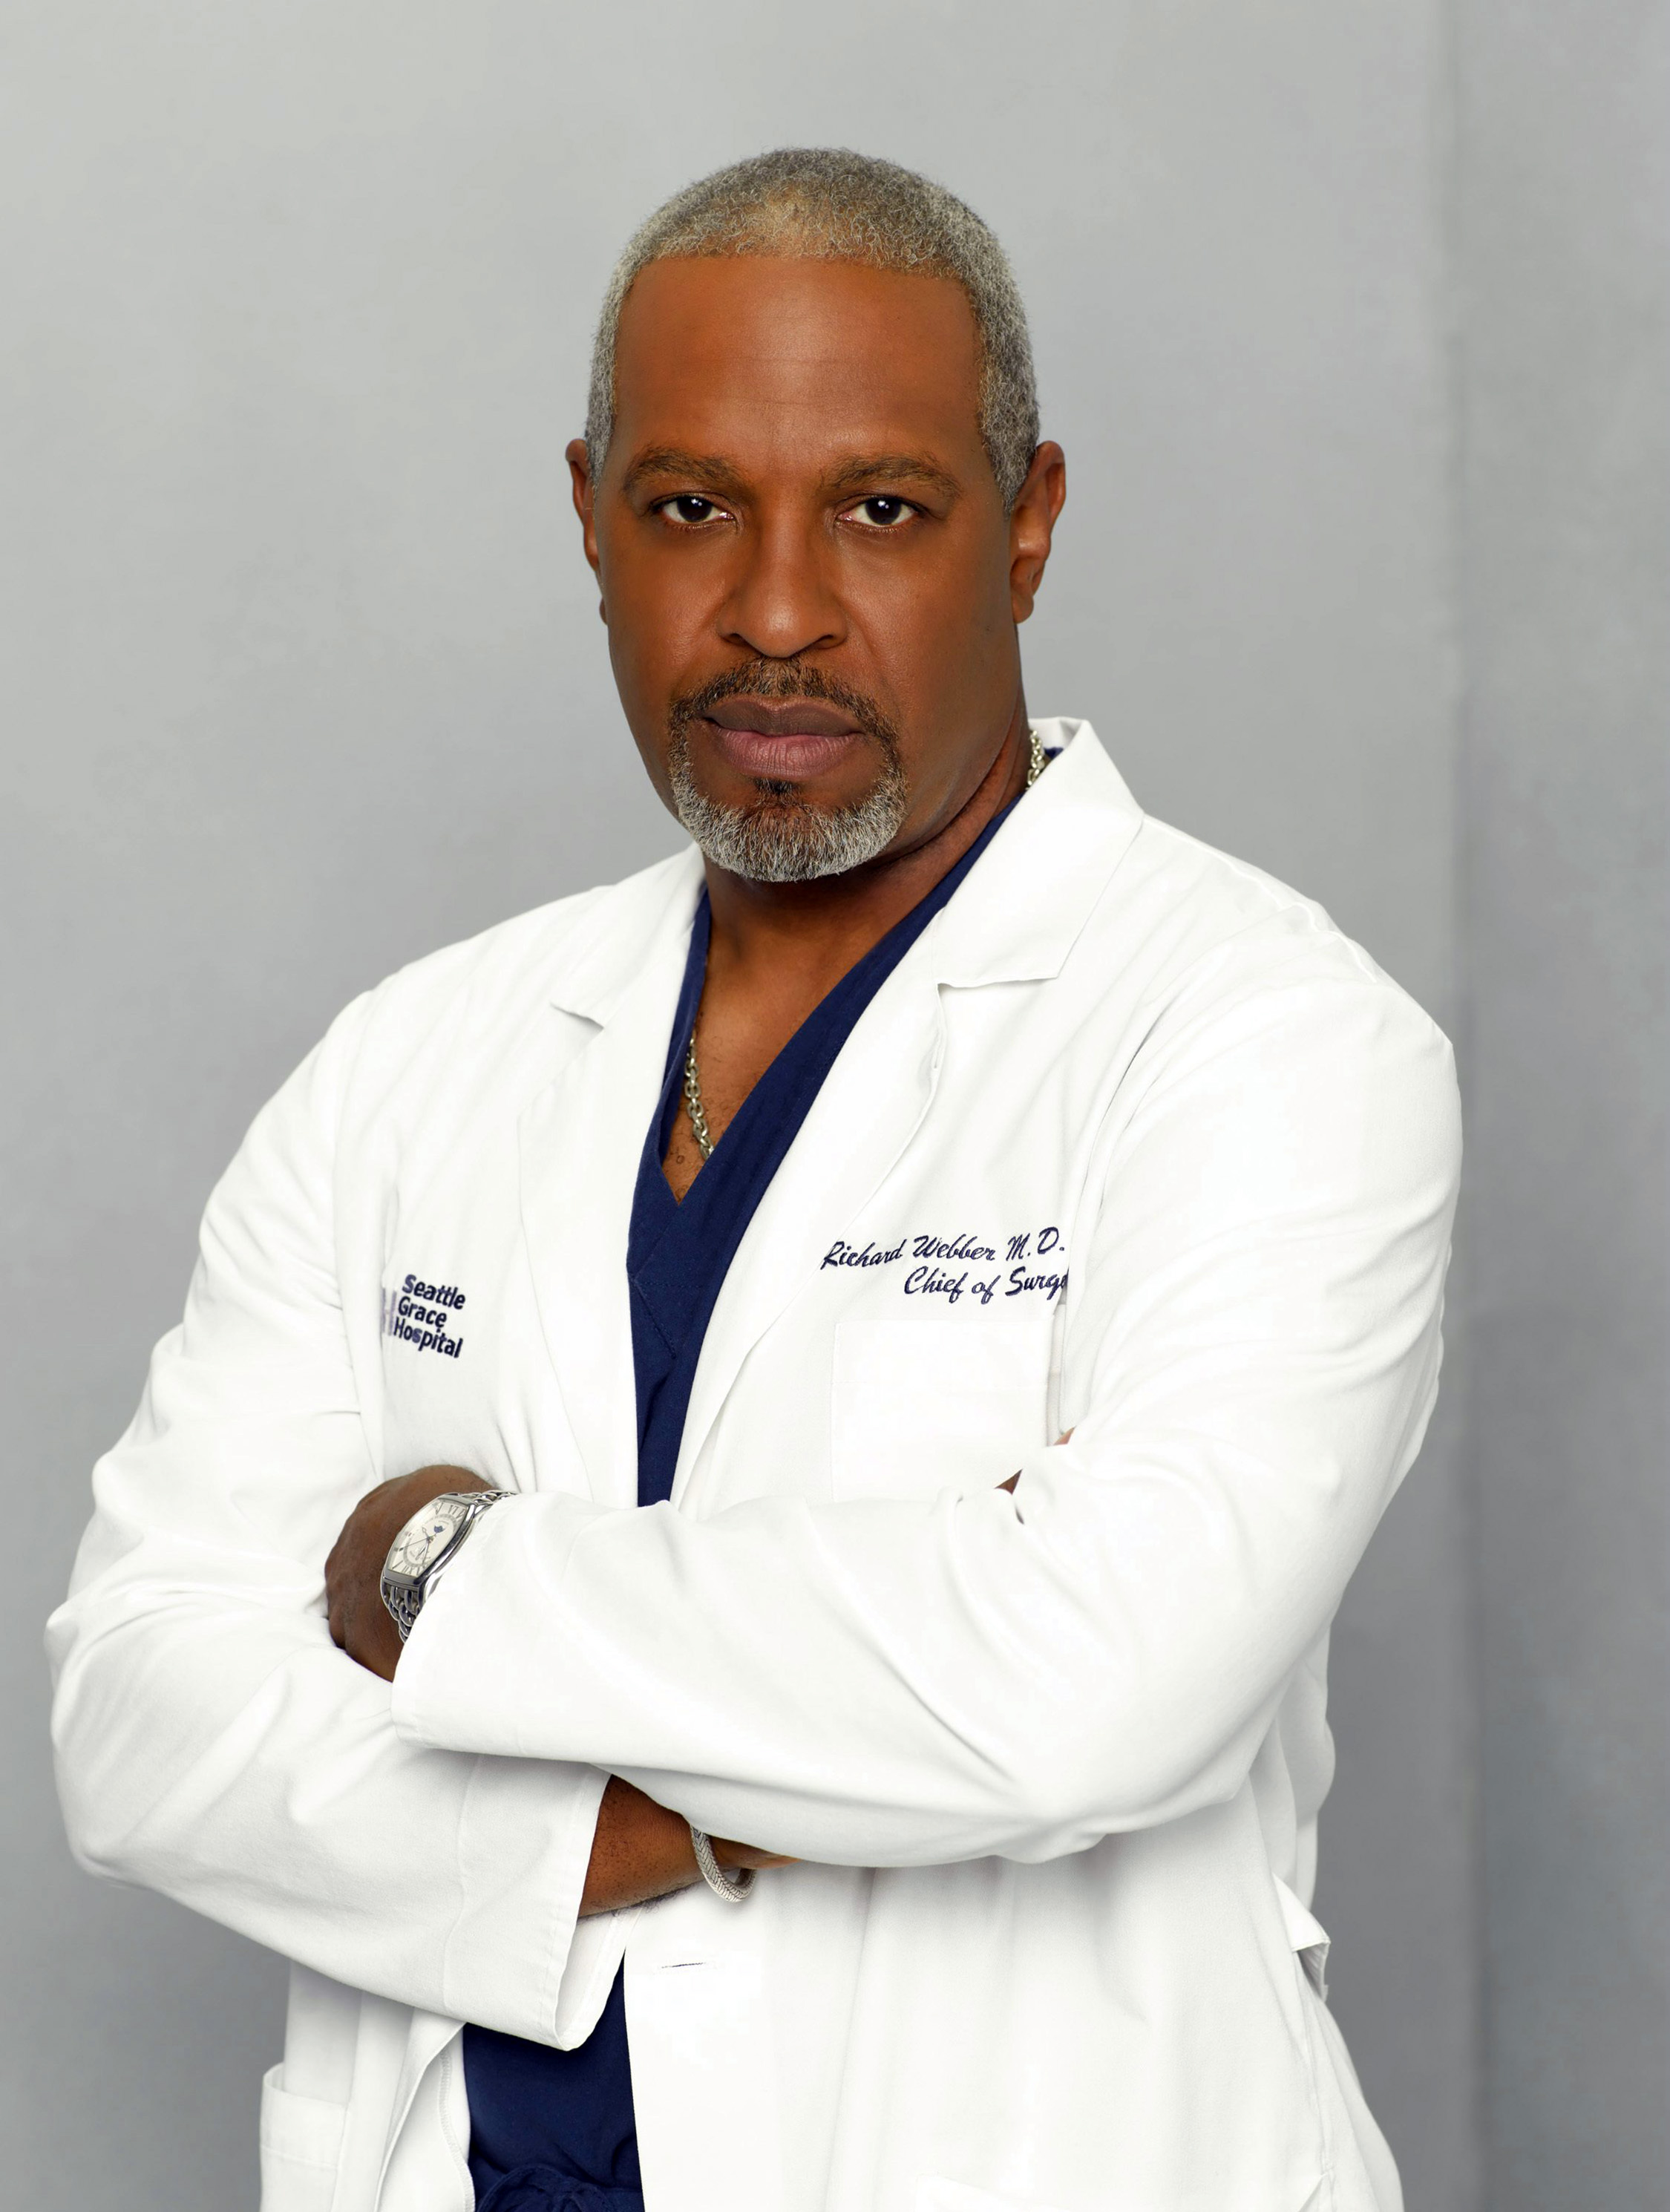 Greys-Anatomy-S04-James-Pickens-Jr-1-dvdbash | DVDbash